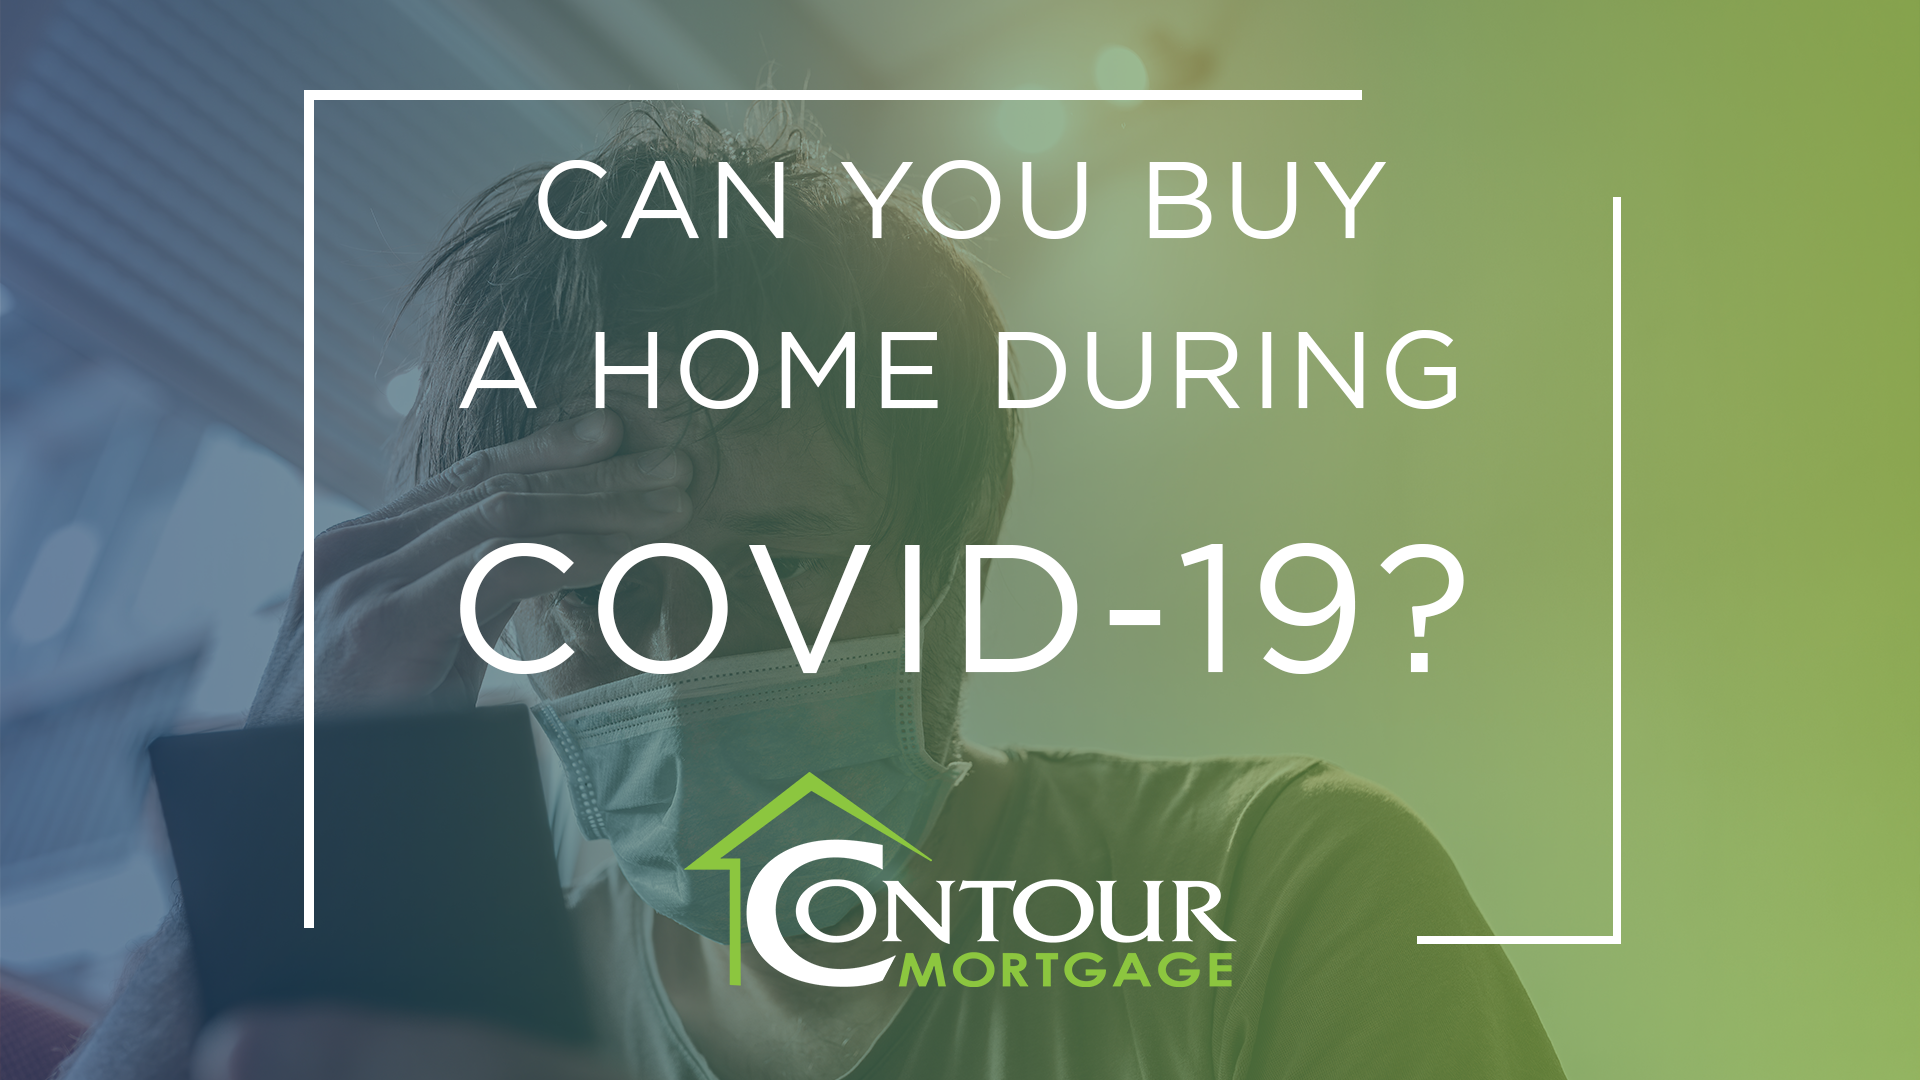 Can you buy a home during covid-19